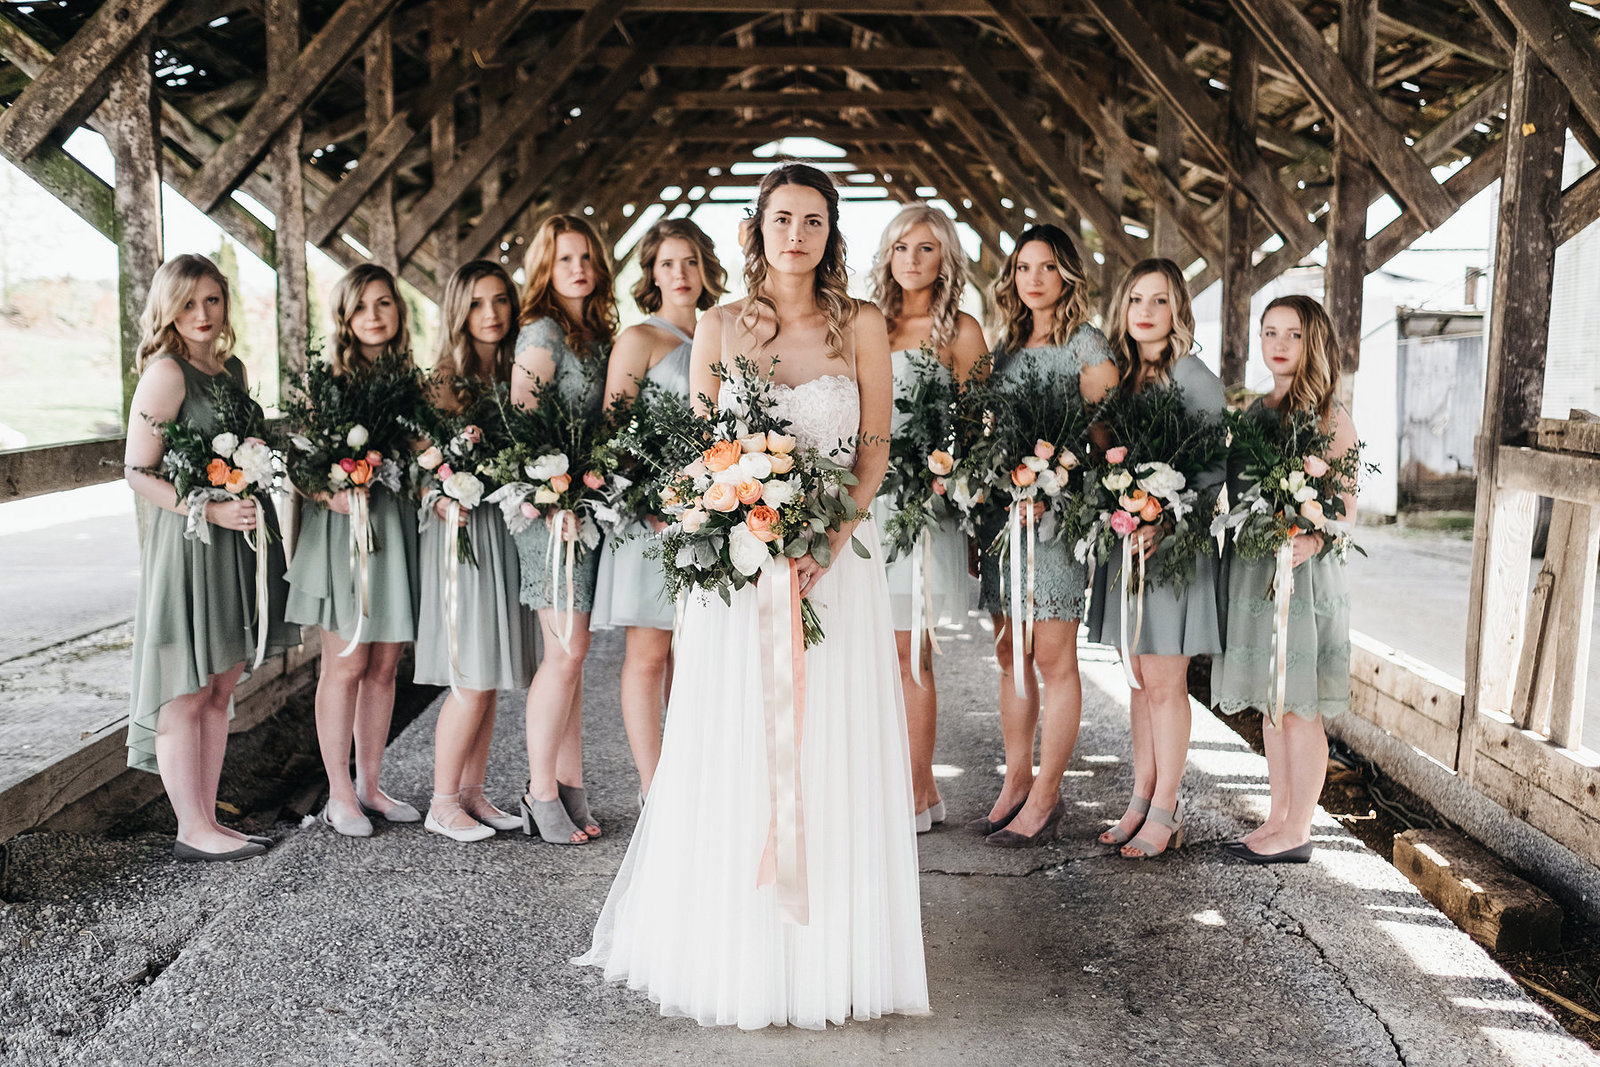 athena-and-camron-seattle-wedding-photographer-dairyland-snohomish-rustic-barn-wedding-flowers-styling-inspiration-lauren-madison-54